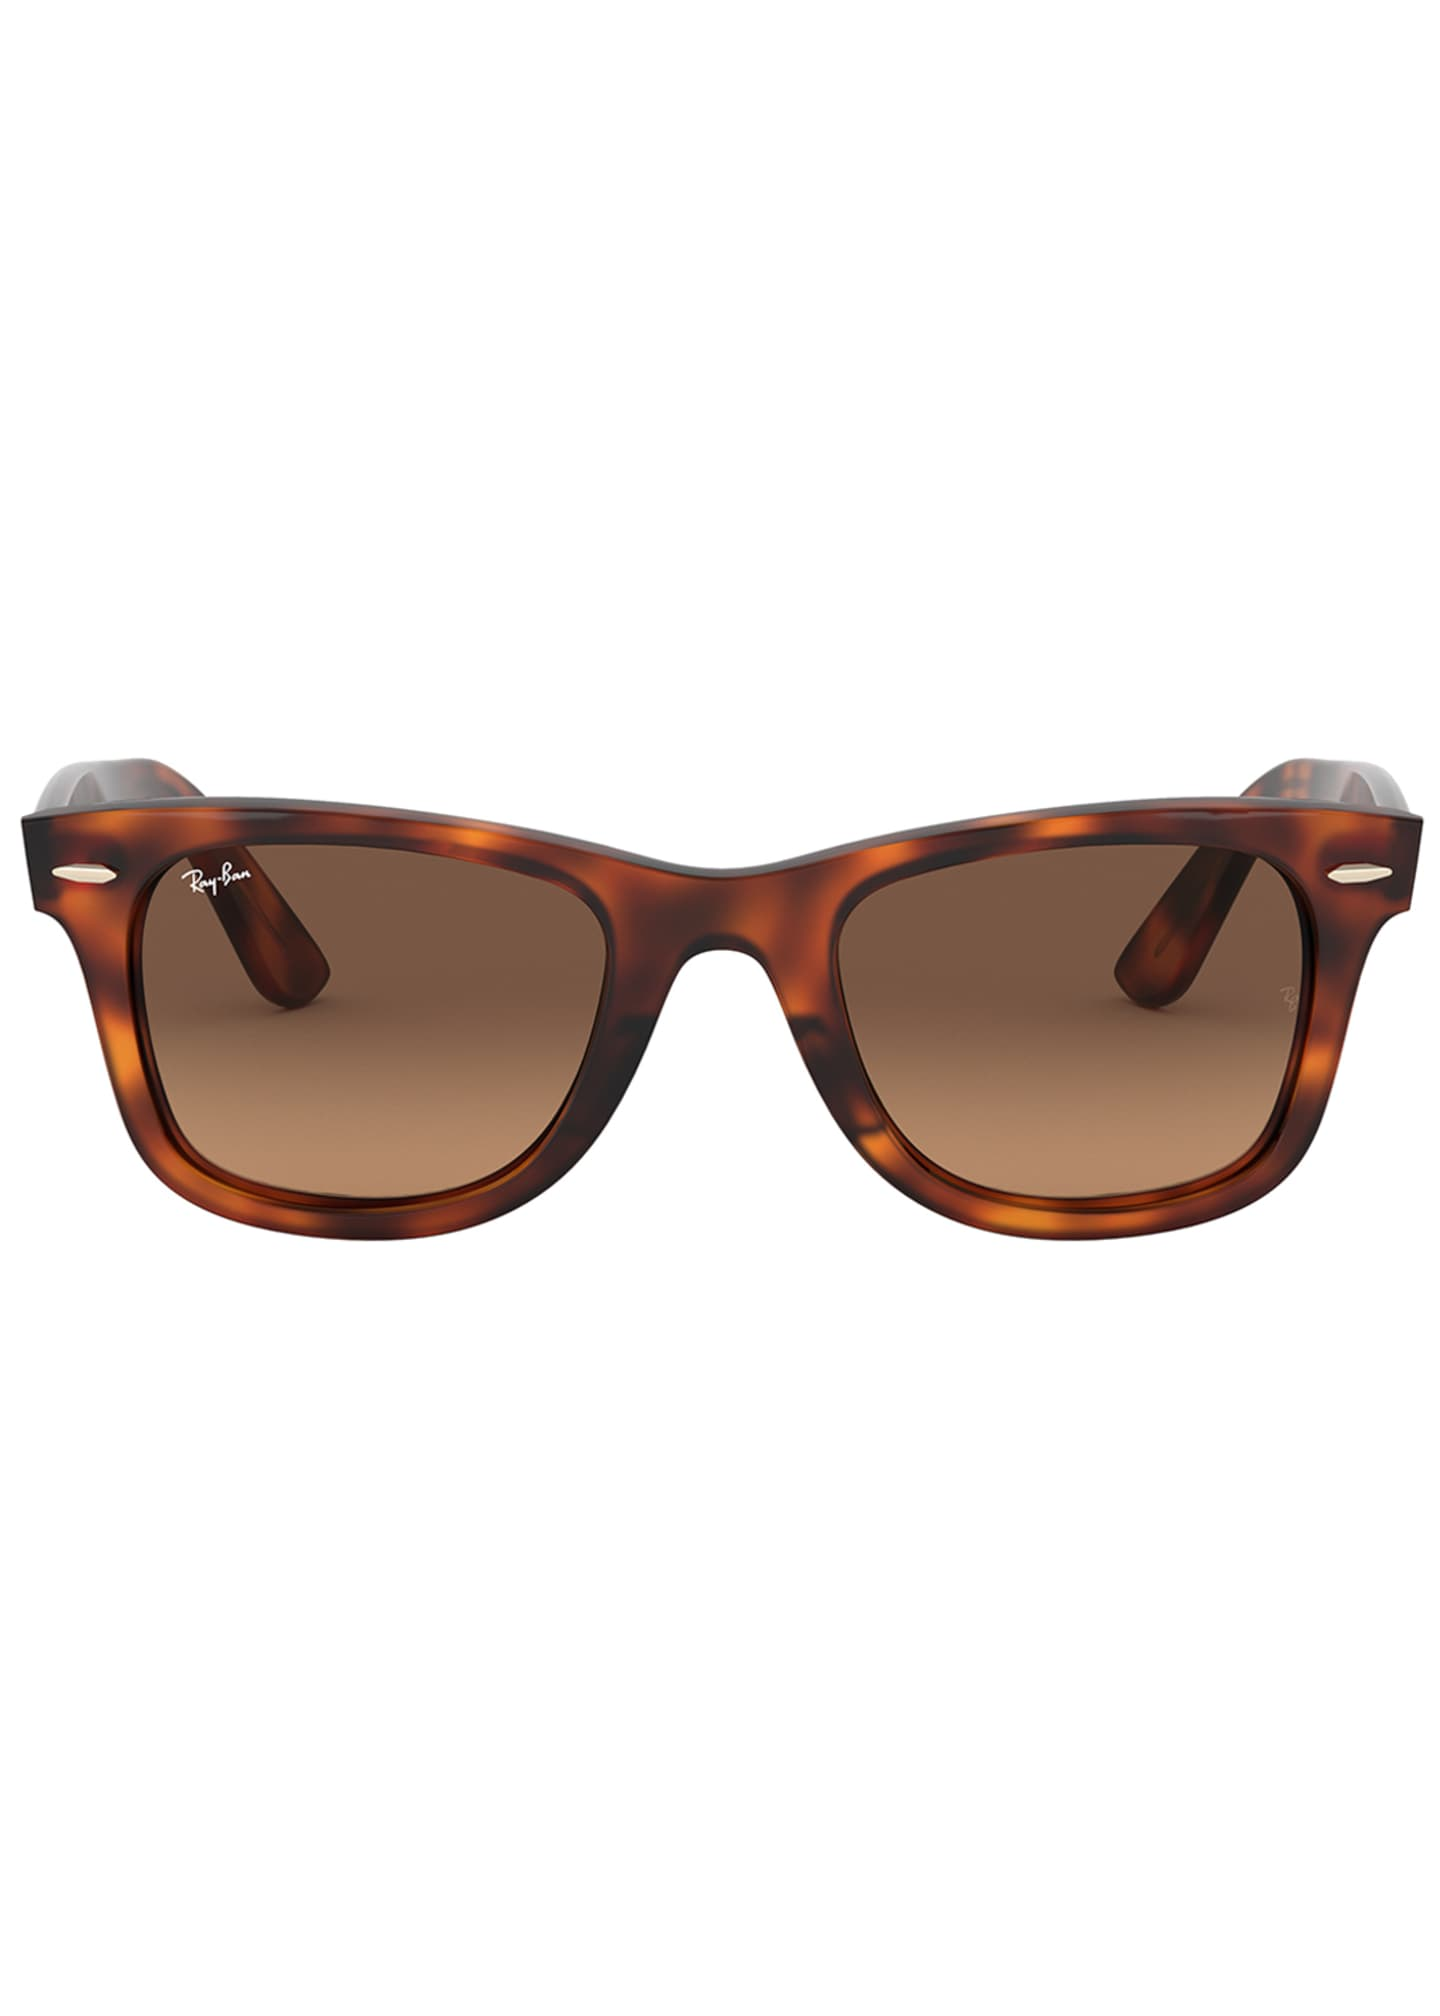 Image 2 of 2: Men's Wayfarer Ease Propionate Sunglasses